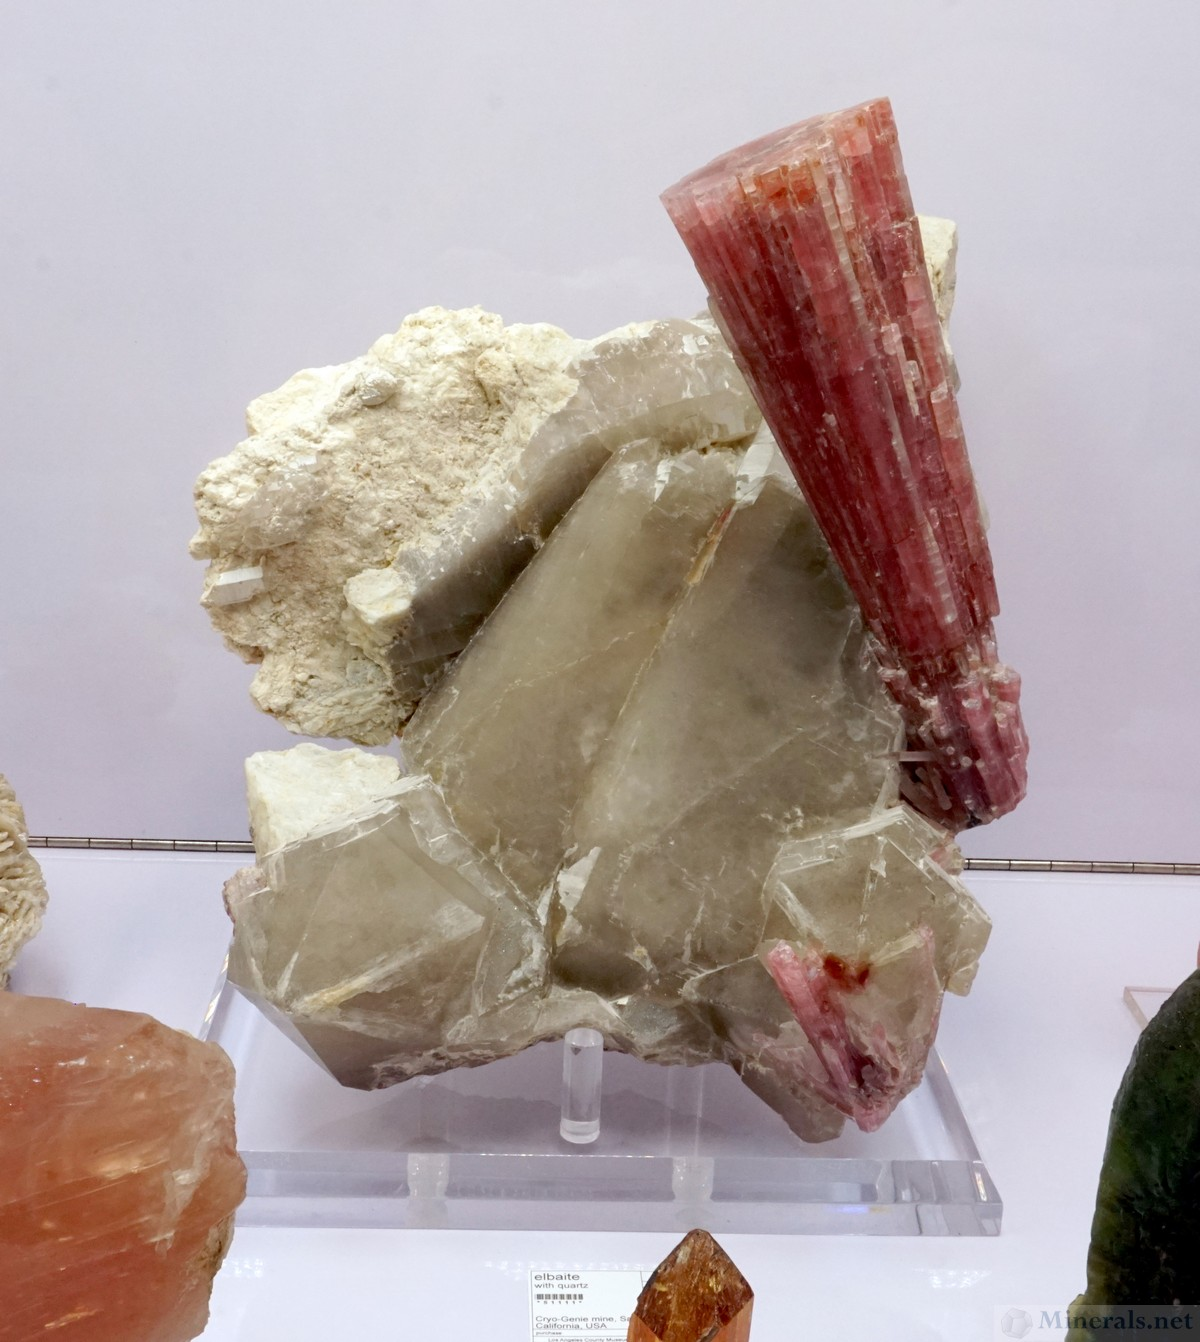 Tourmaline Spray on Quartz from the Cryo-Genie Mine, Warner Springs, San Diego Co., CA, Natural History Museum, Los Angeles County